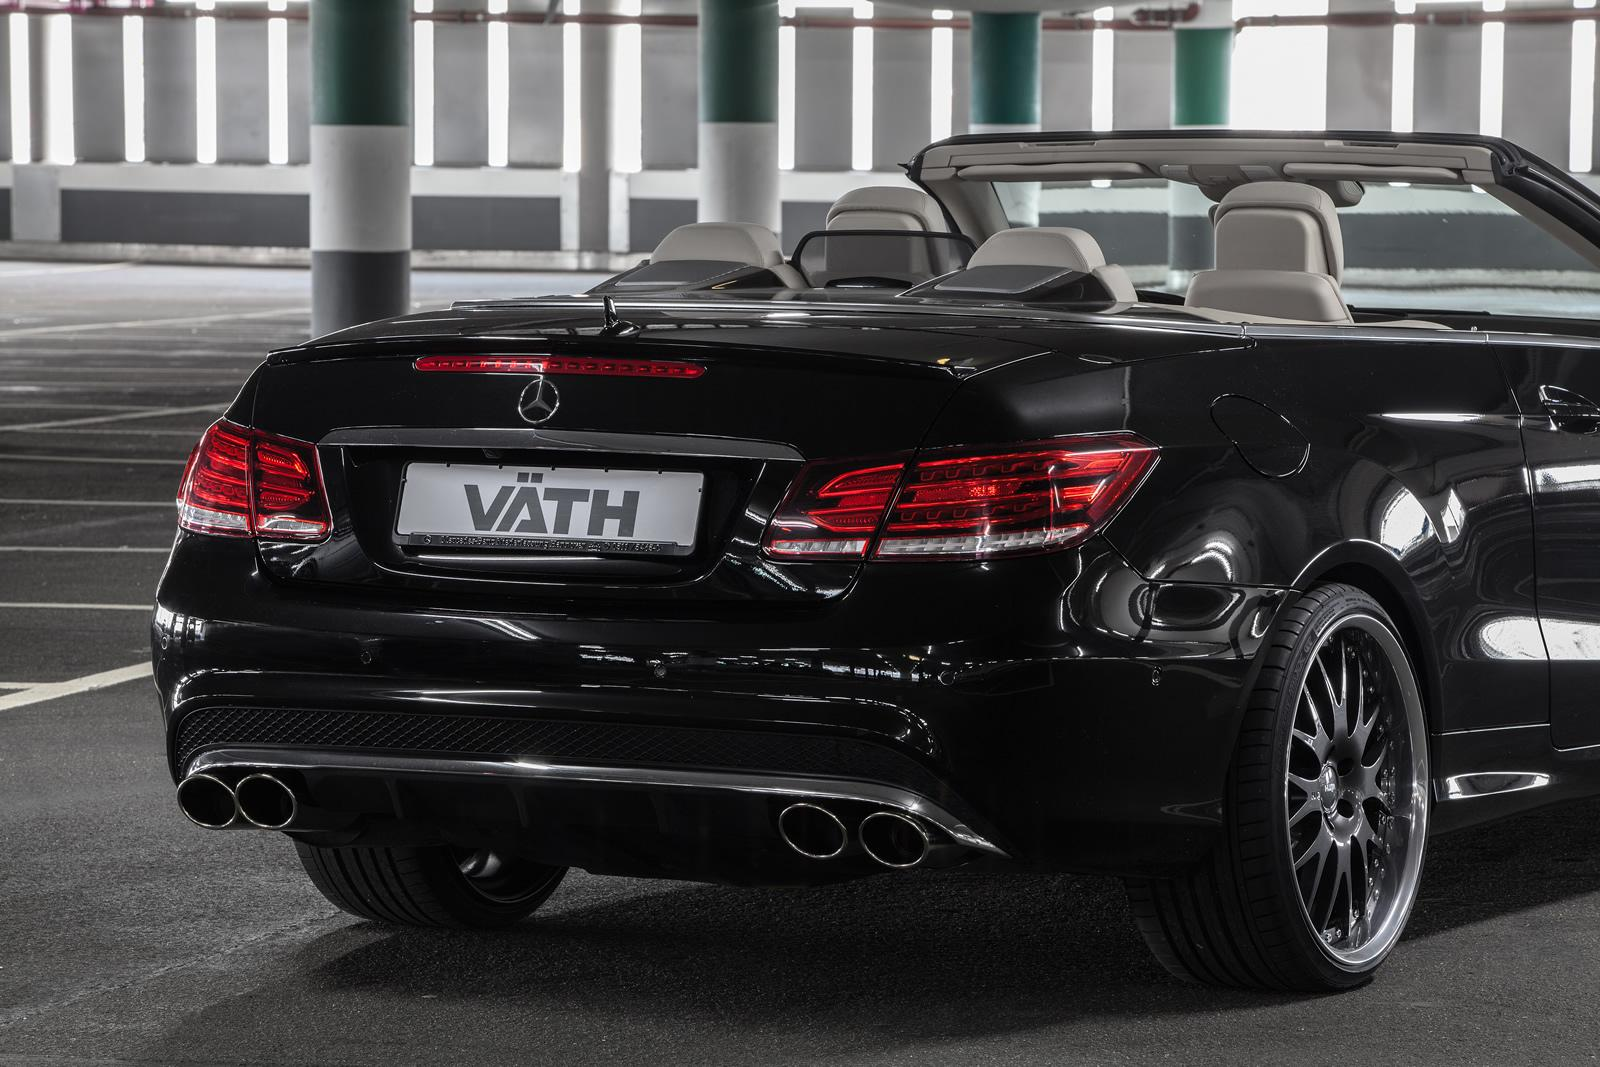 mercedes benz e500 cabriolet receives 550 hp from vath sounds like lots of fun autoevolution. Black Bedroom Furniture Sets. Home Design Ideas